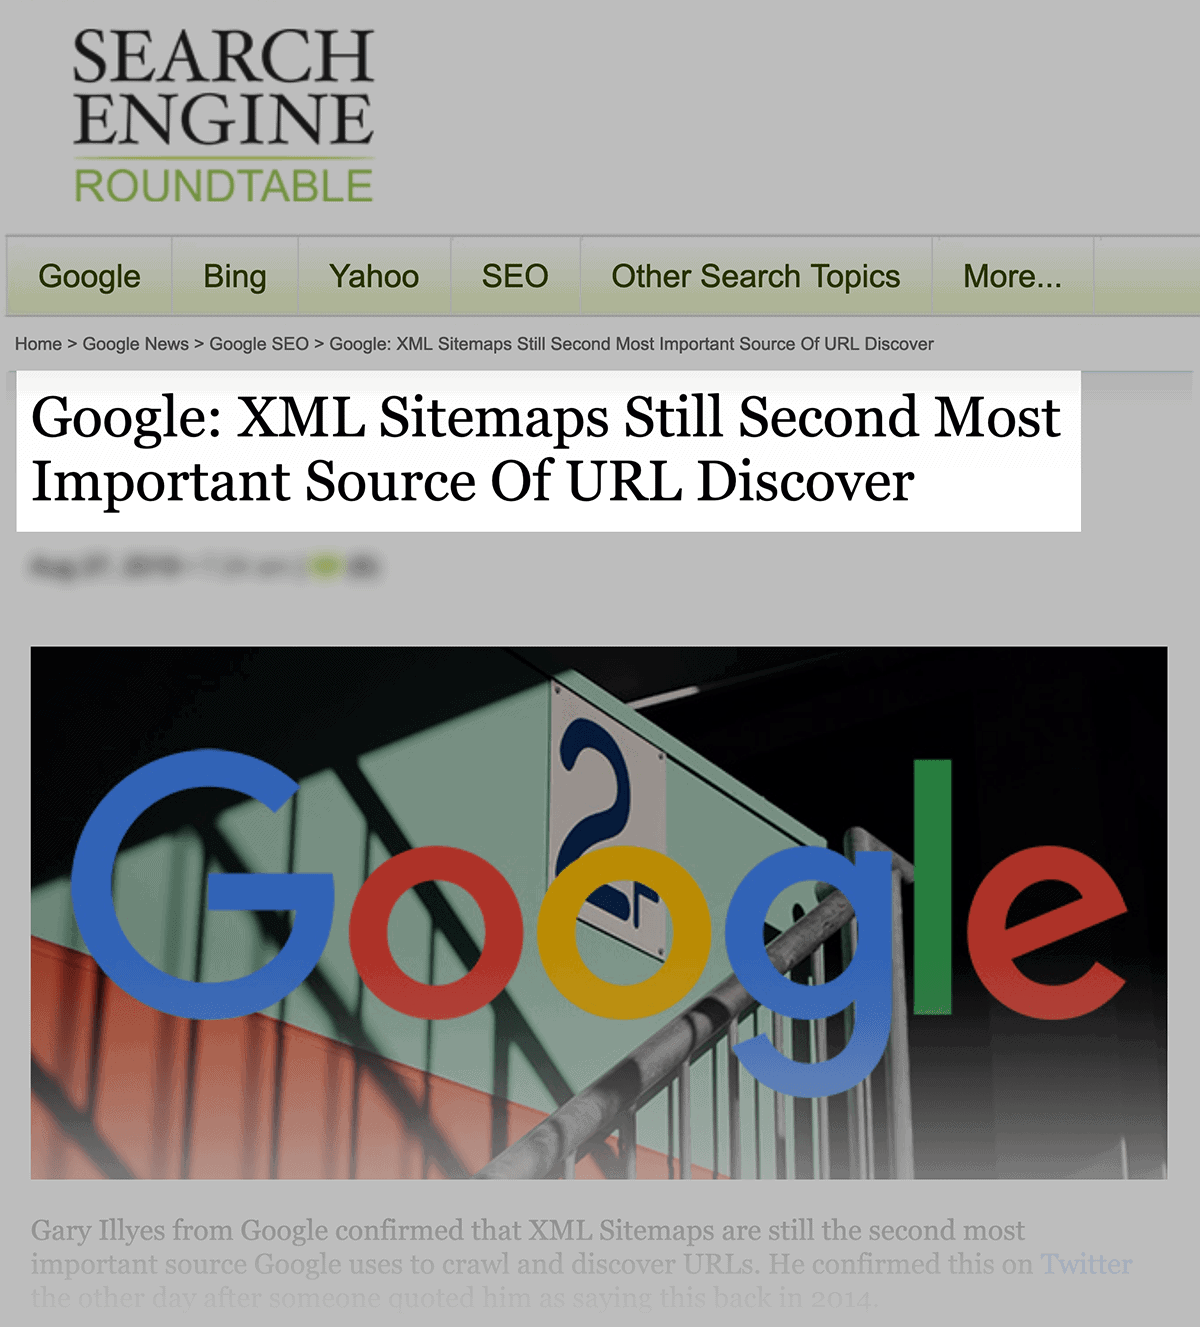 Google: XML Sitemaps are the second most important source